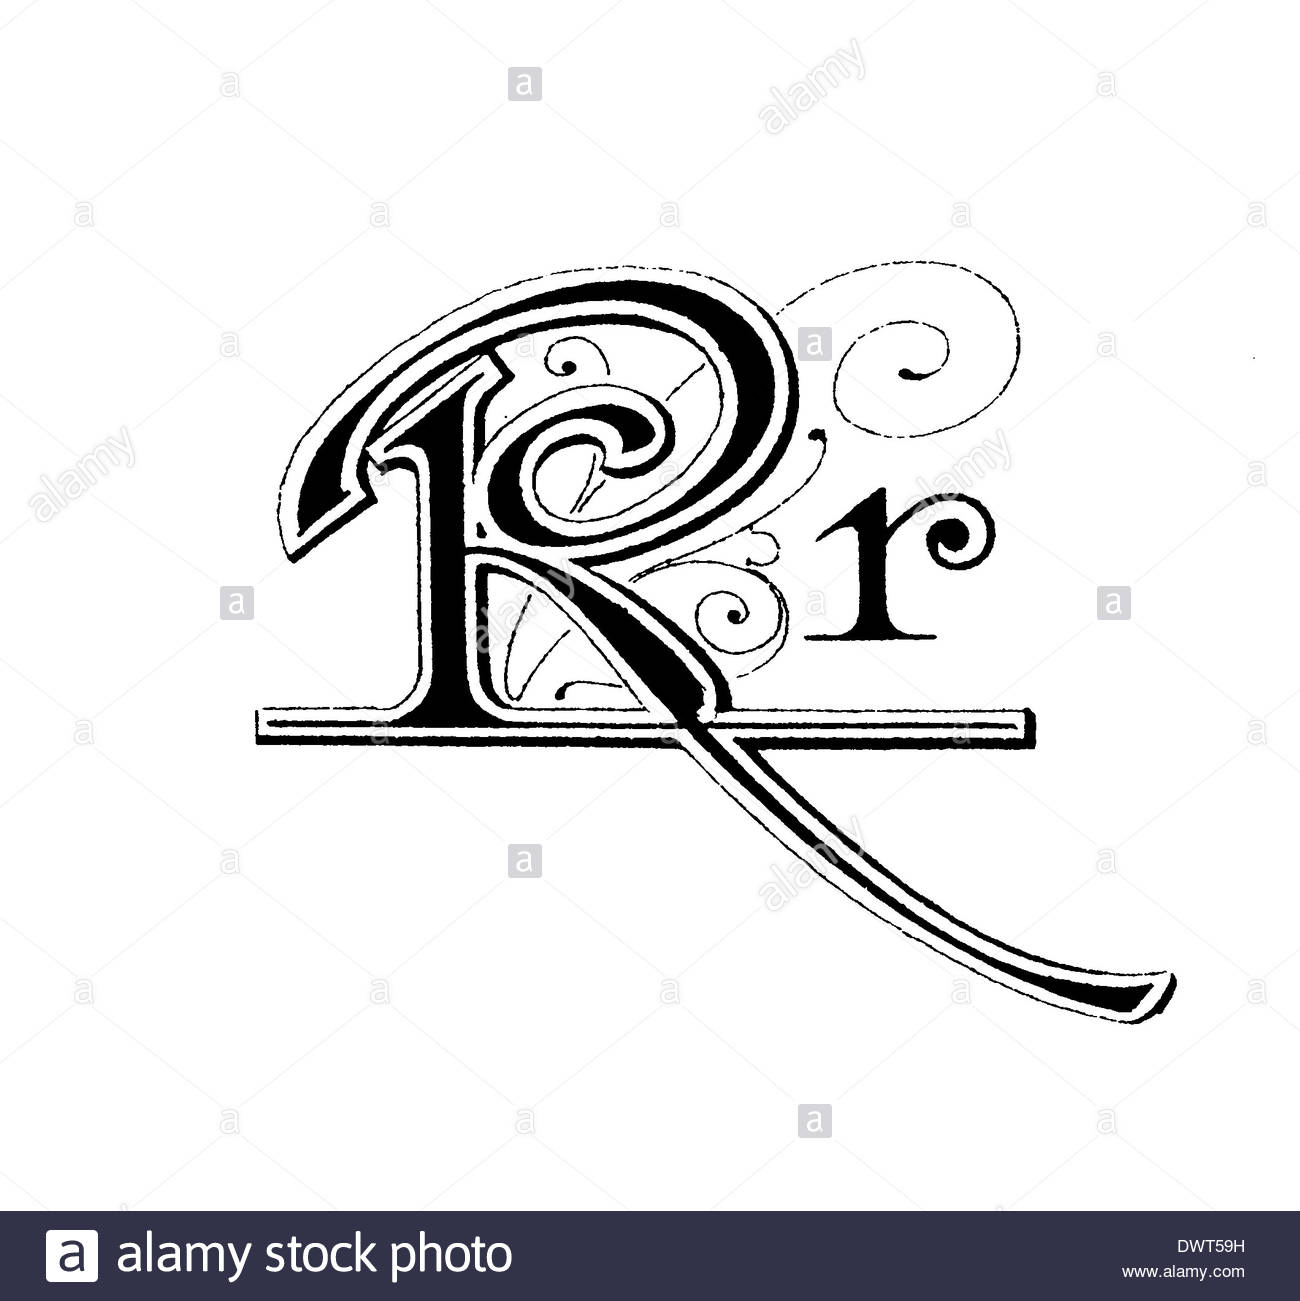 Alphabetic Character, Letter R Stock Photo, Royalty Free Image.